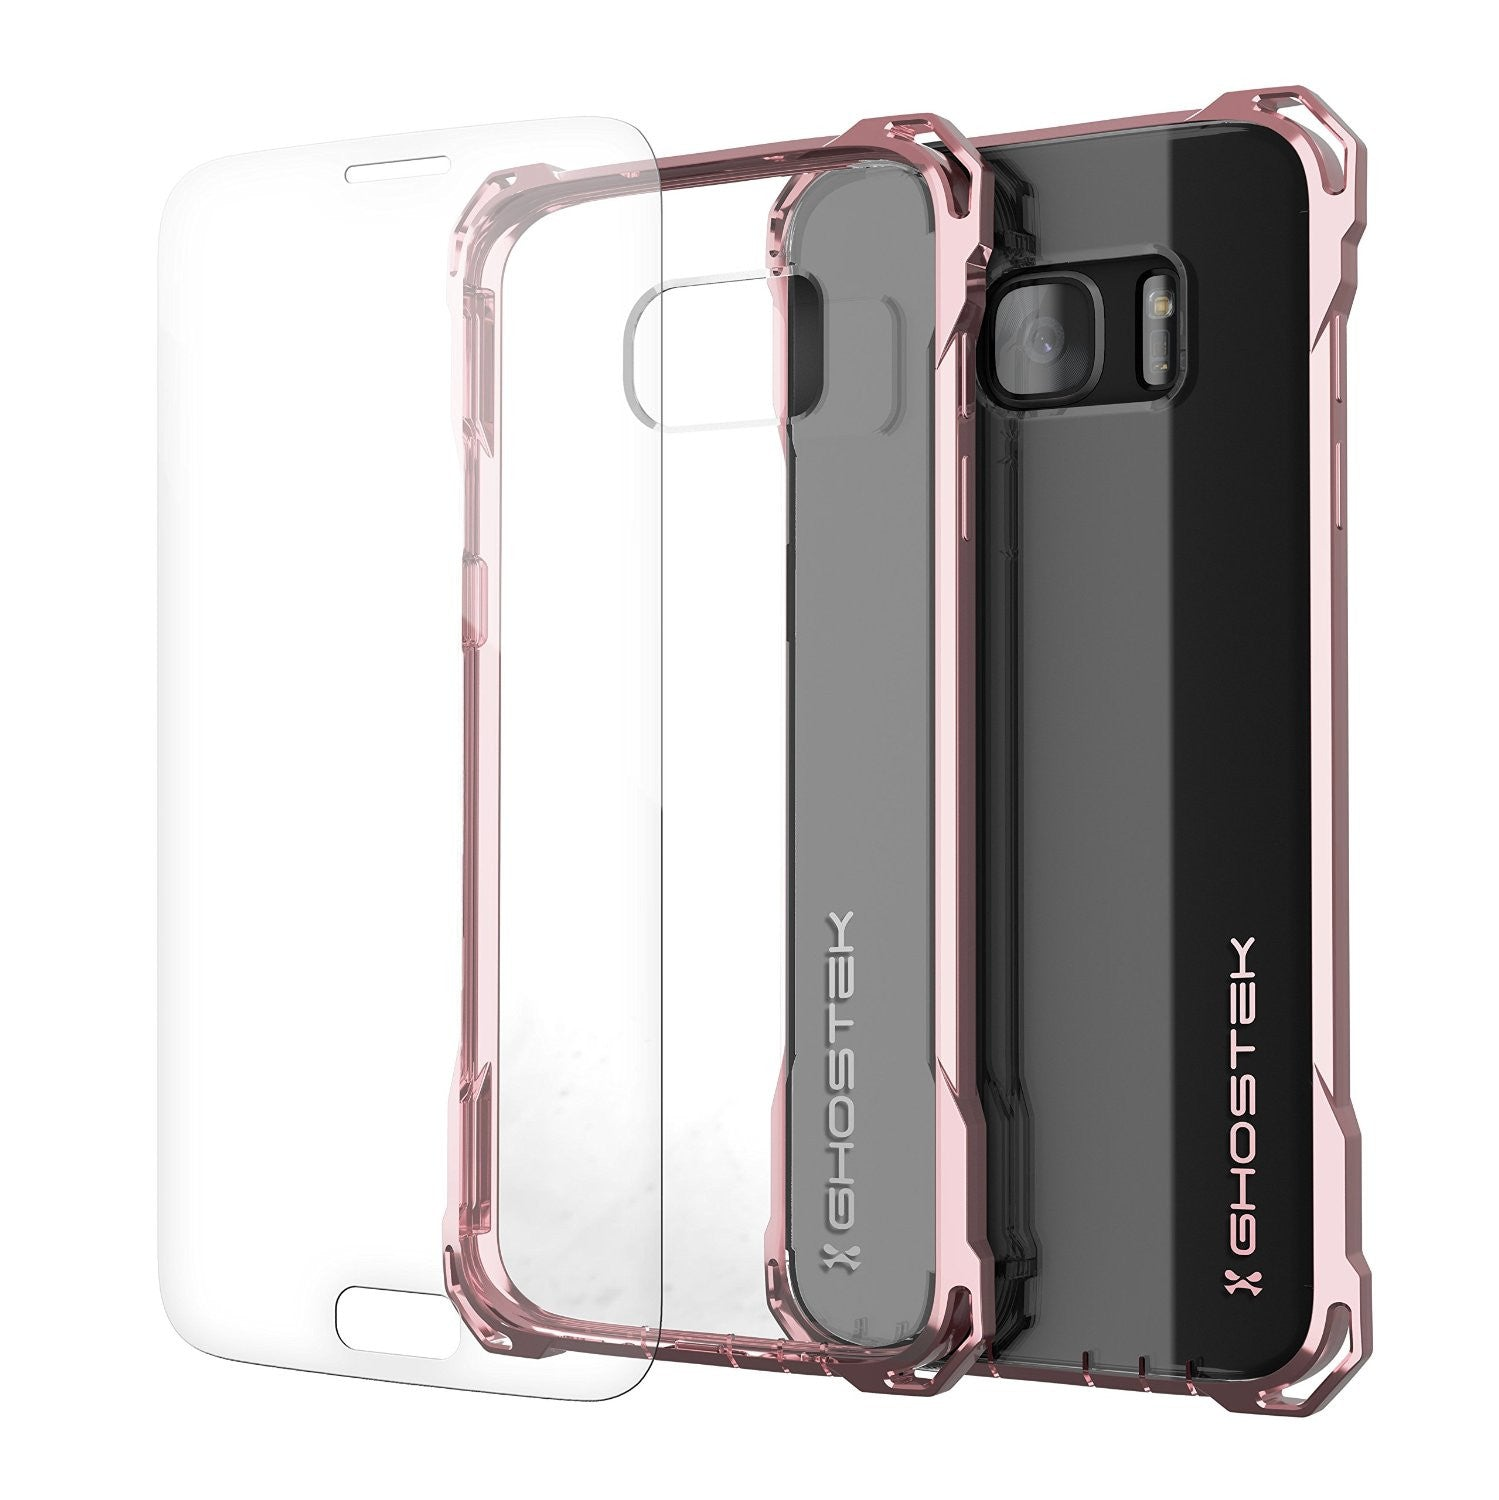 S7 Edge Case, Ghostek® Covert Peach Series Premium Impact Cover | Lifetime Warranty Exchange